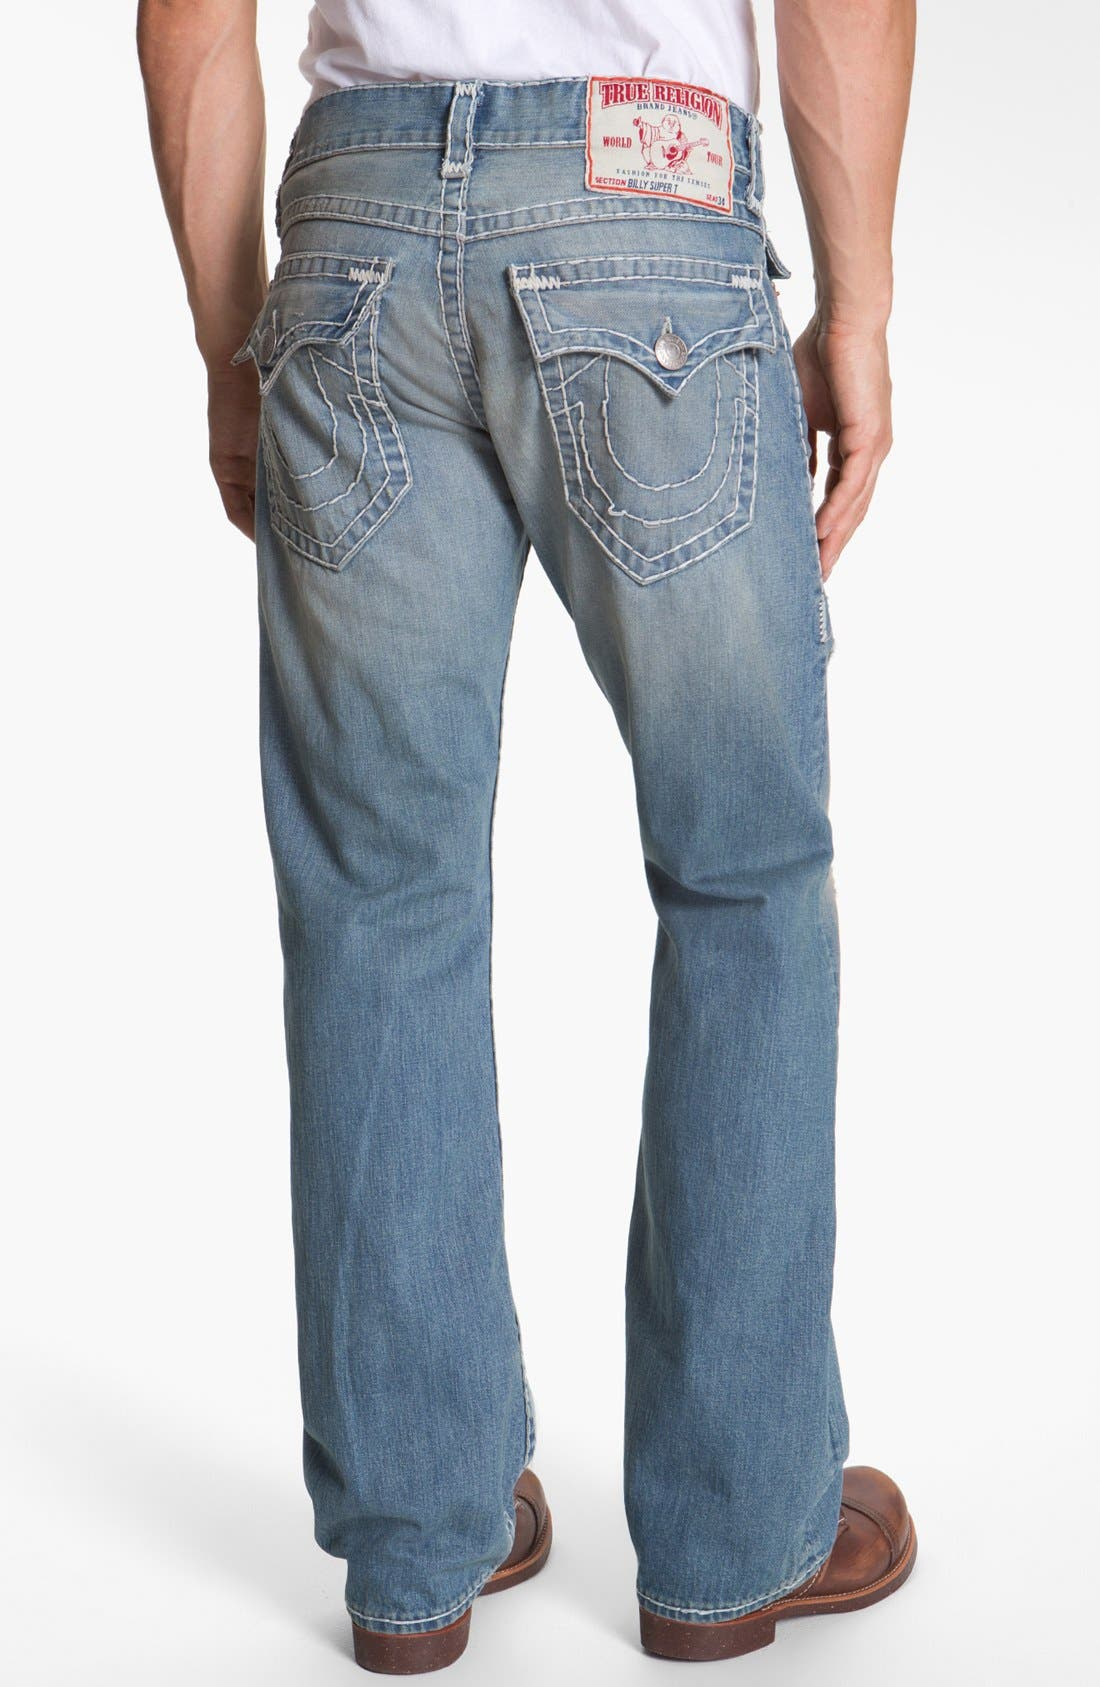 Alternate Image 1 Selected - True Religion Brand Jeans 'Billy - Natural Super-T' Bootcut Jeans (Wicket)